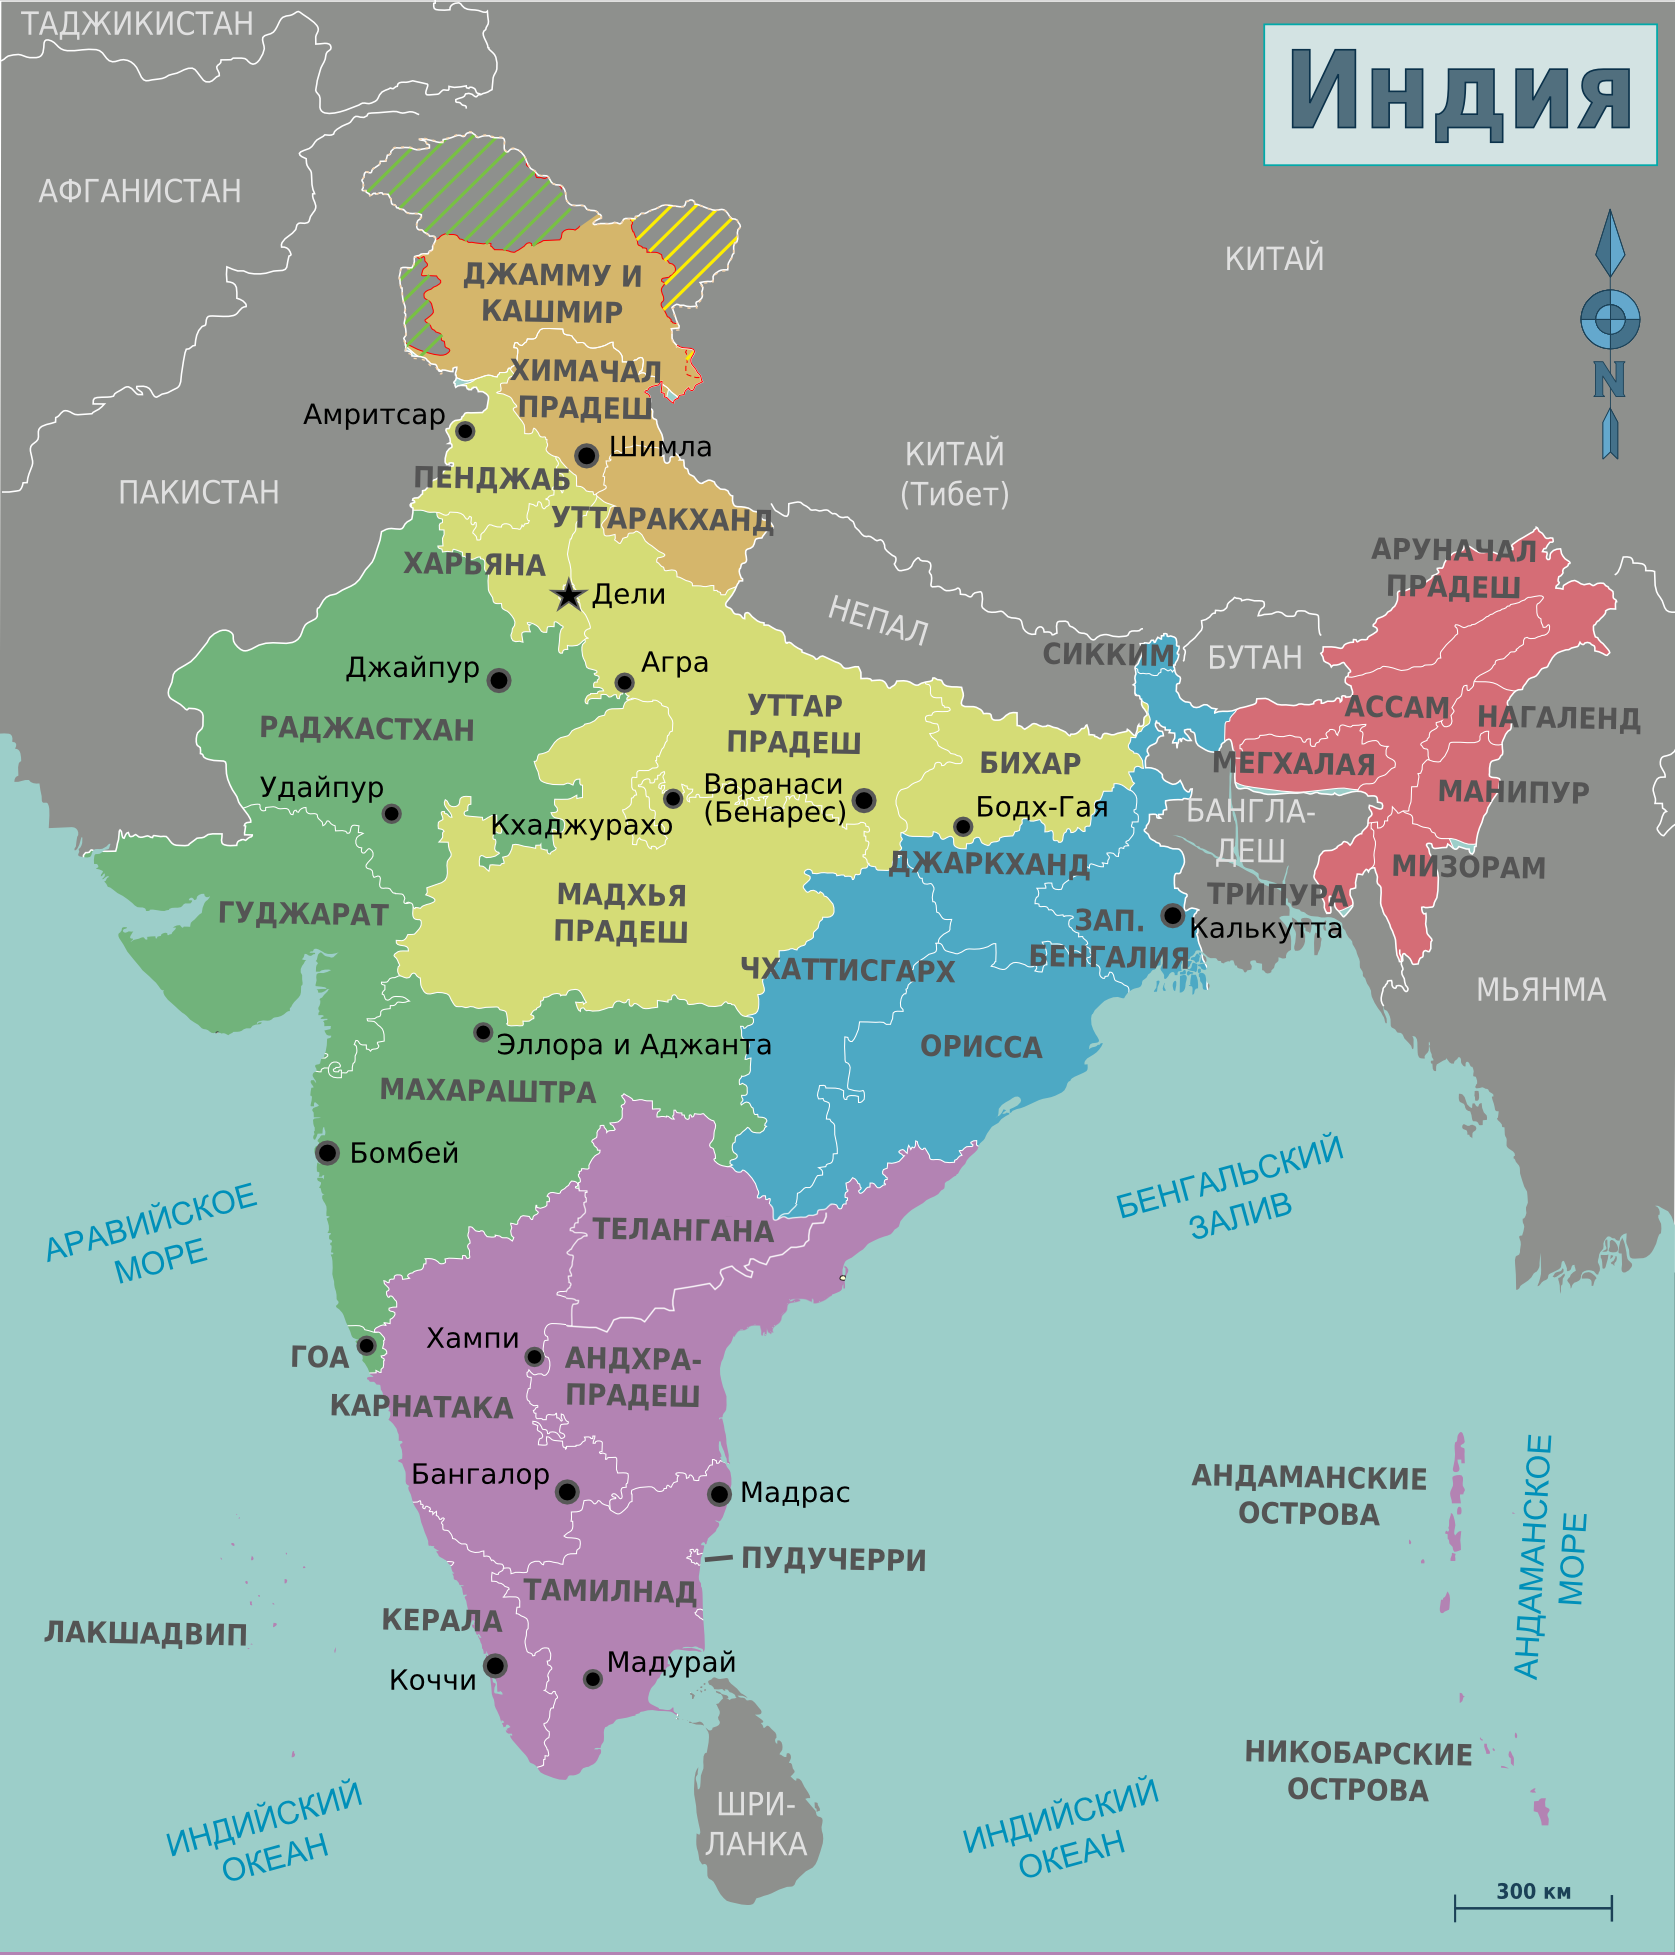 how did india benefit from its location in historical type How did the british use the indian civil service to change the loyalties of indians who worked in it this clip provides examples of ways in which the british tried to change india by improving its why might the settling of local disputes by neighbours or village councils be of greater benefit to indian.